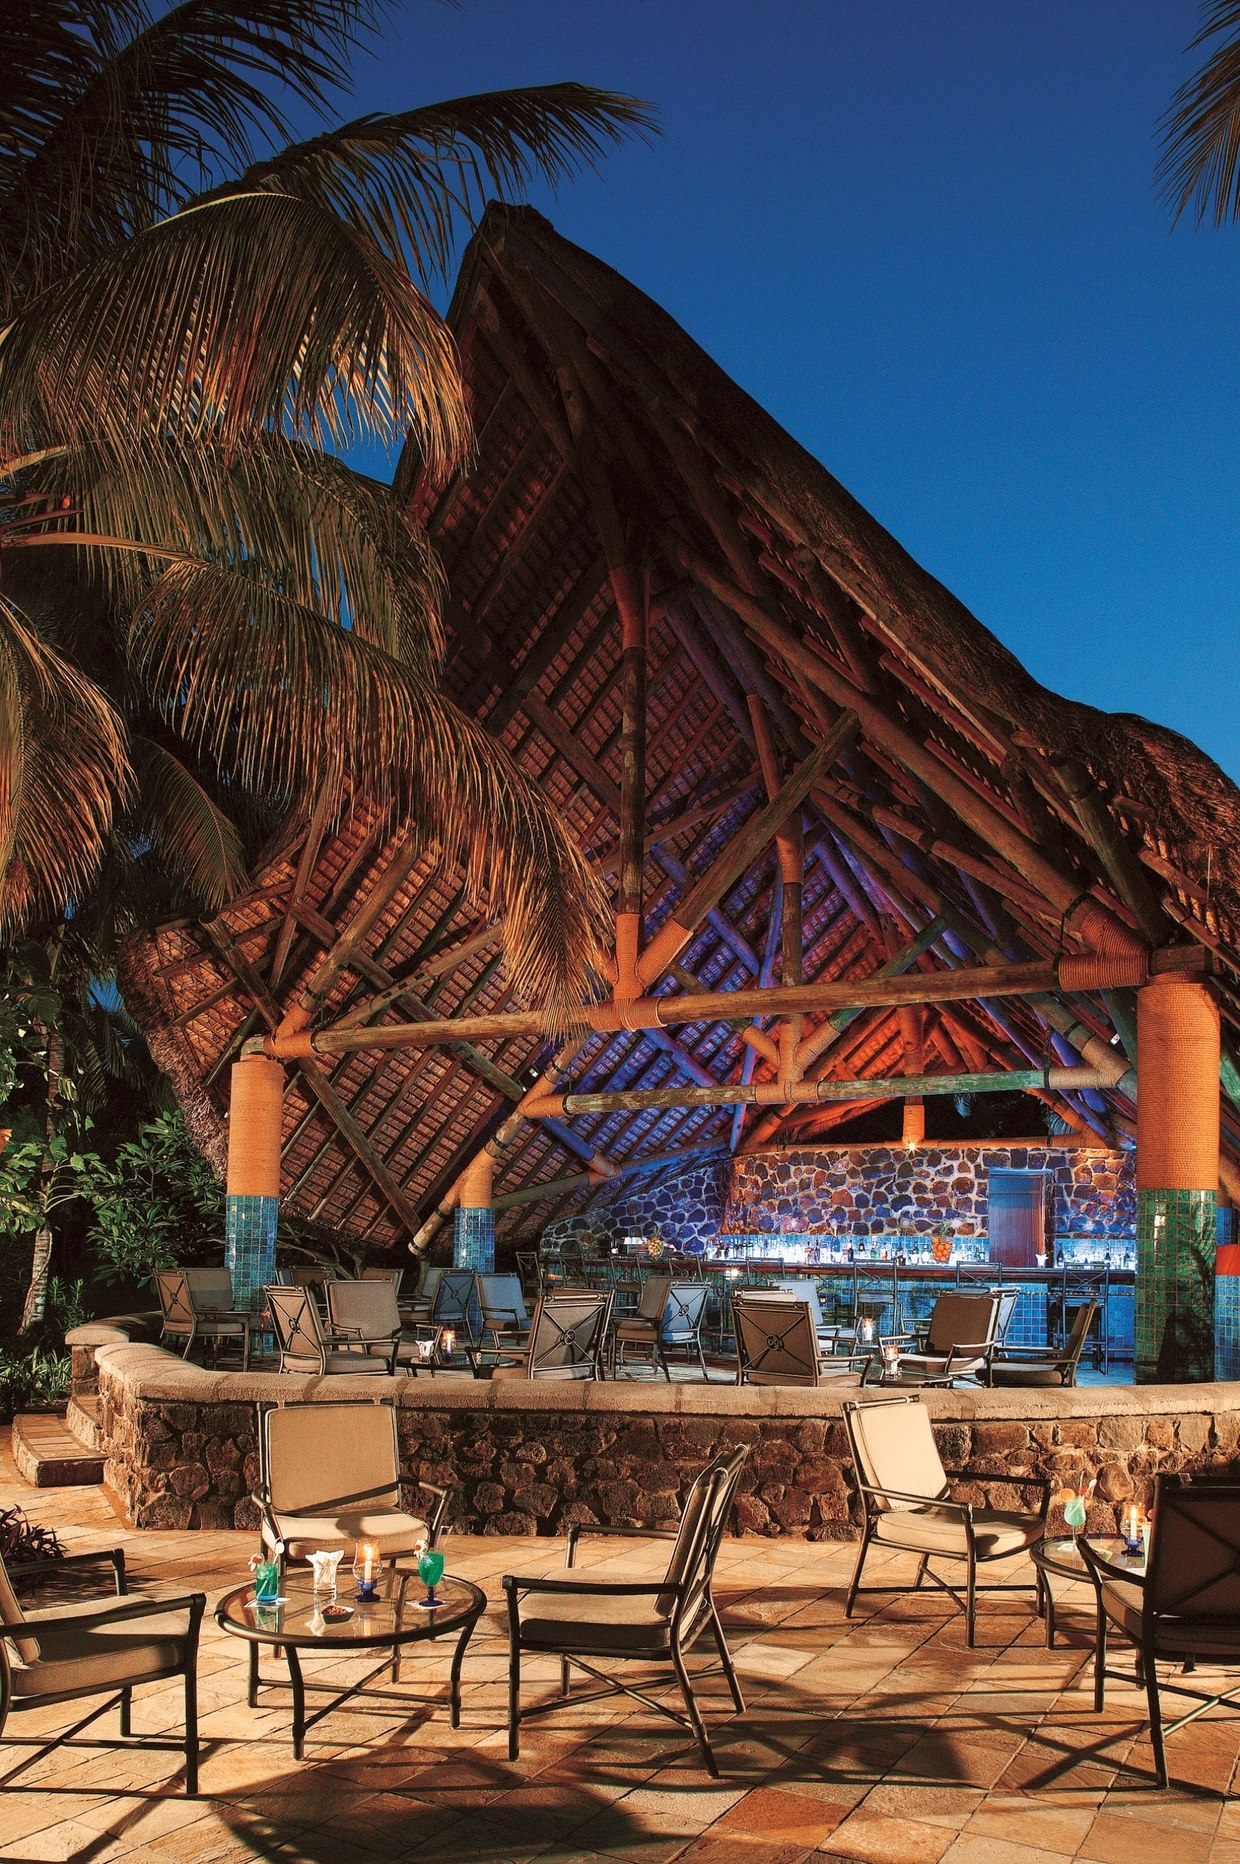 Relaxed atmosphere at la pirogue resort mauritius for Design hotel mauritius